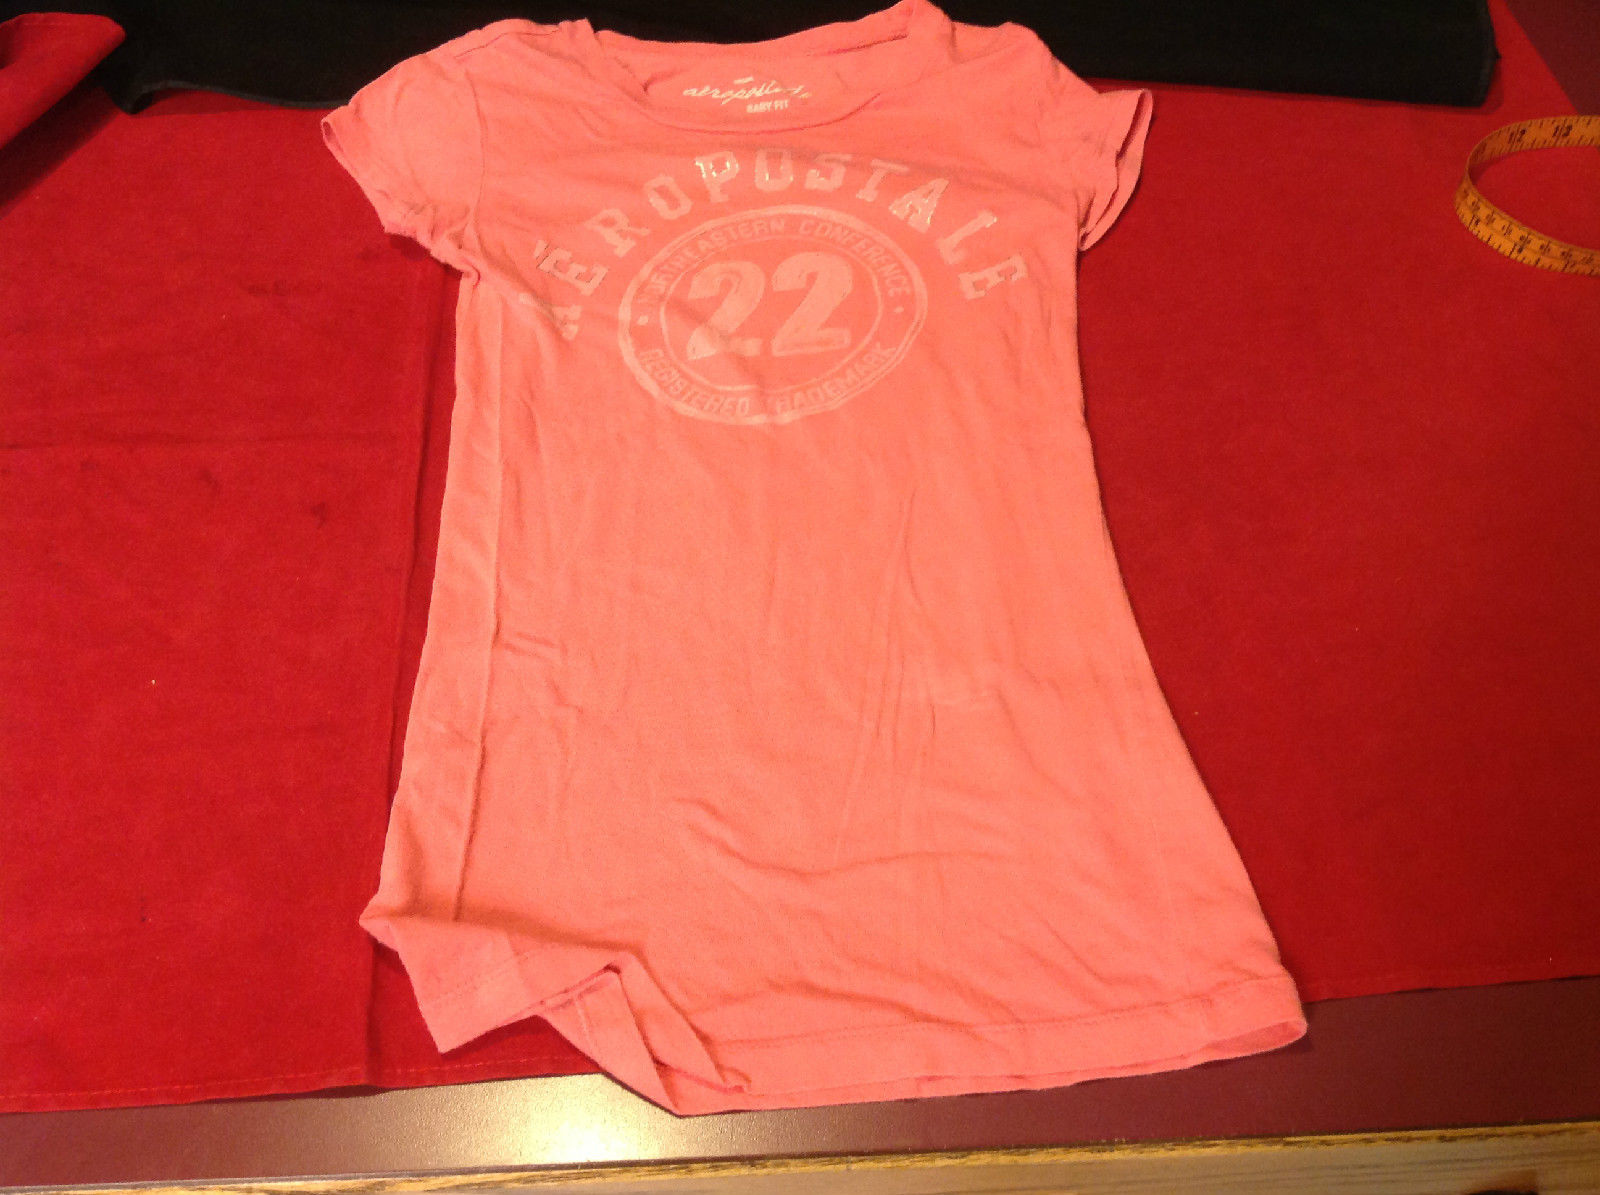 Aeropostale Ladies T-shirt Orange Color Baby Fit Size XS TP